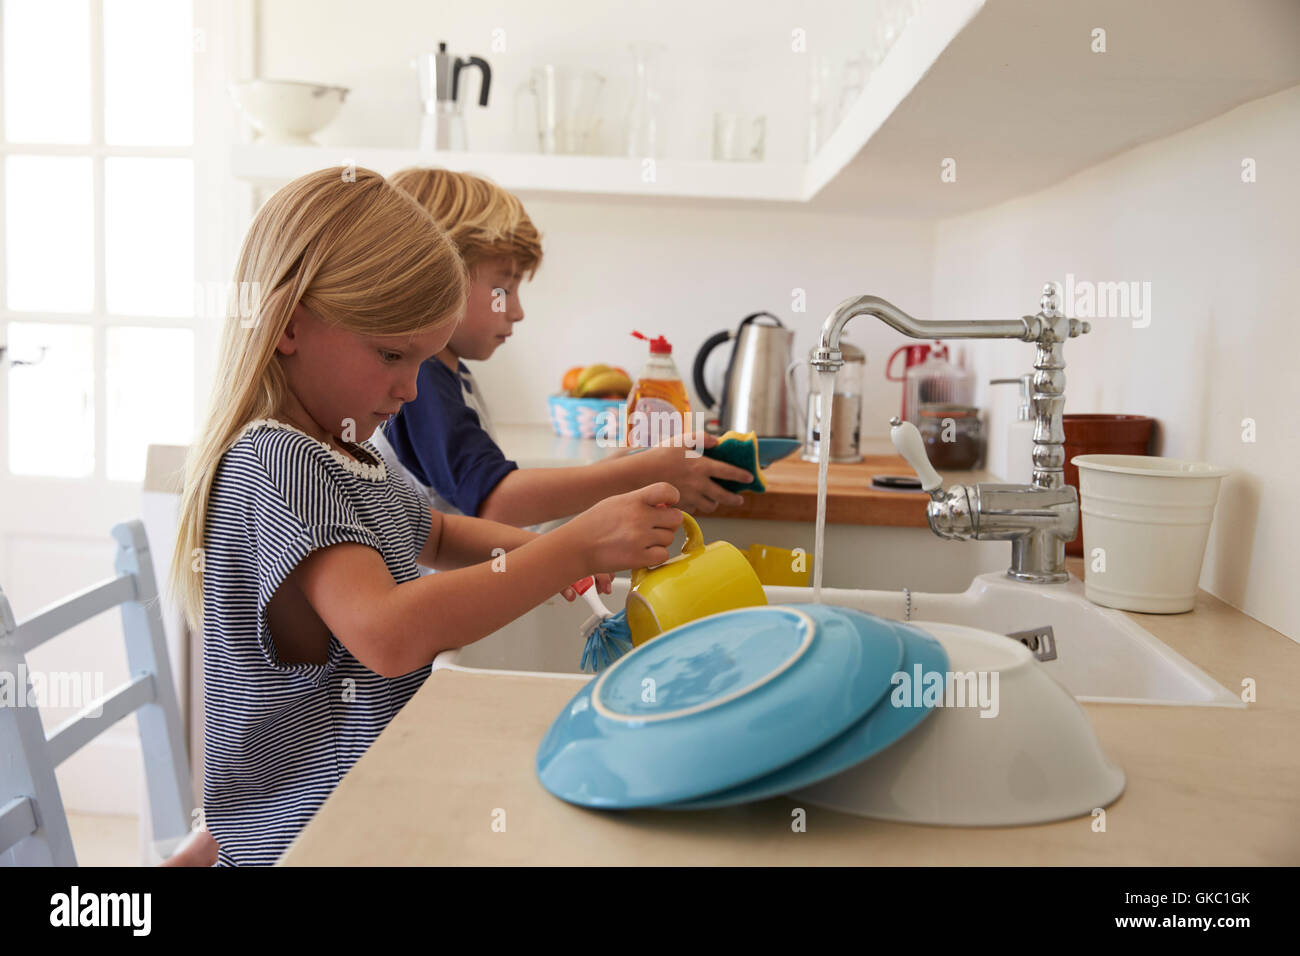 Brother and sister kneeling on chairs to wash up in kitchen - Stock Image